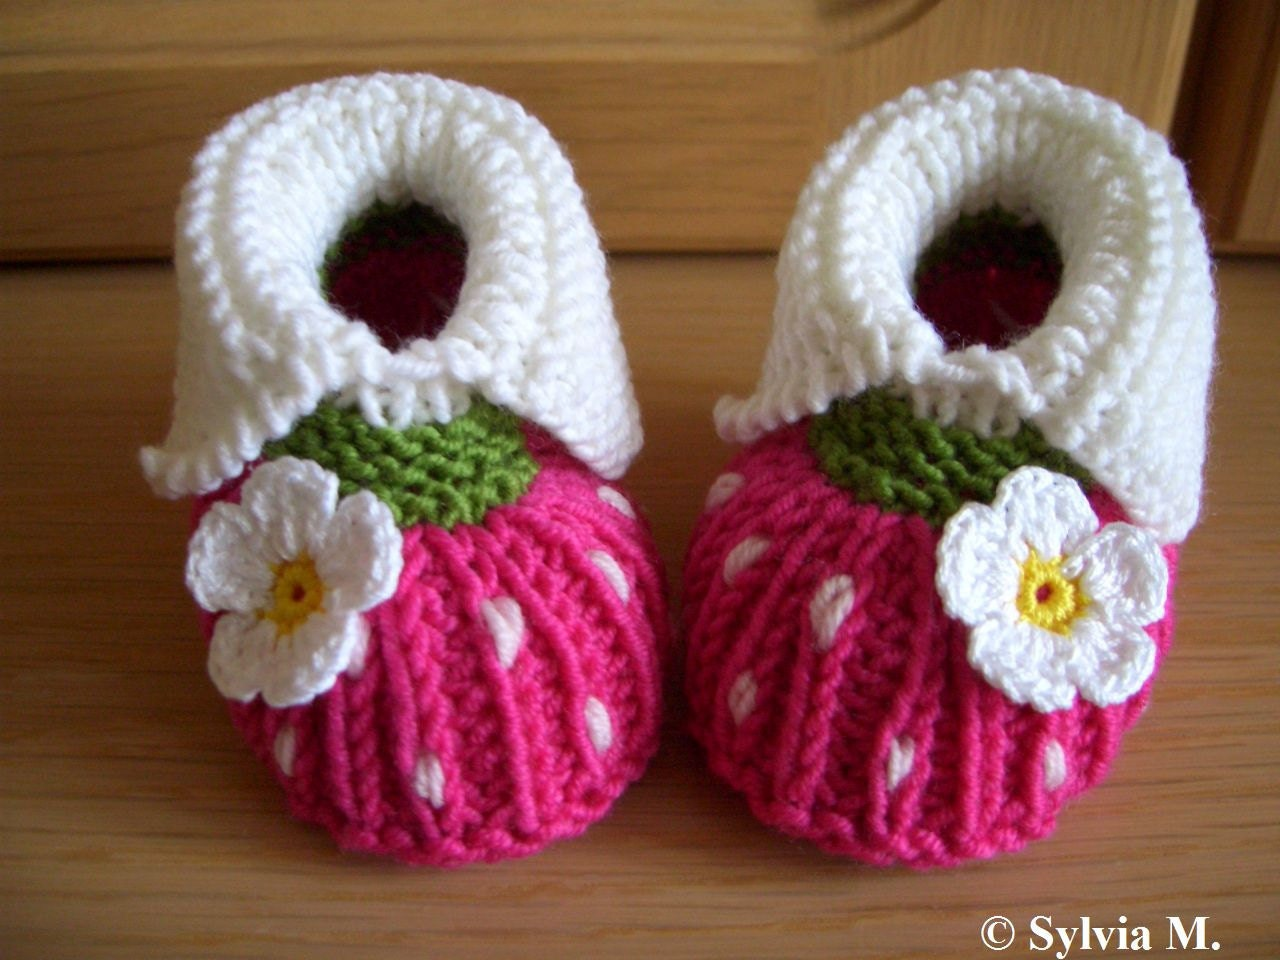 Knitted baby shoes for 0-6 months /9cm /35 inch by strichhexe